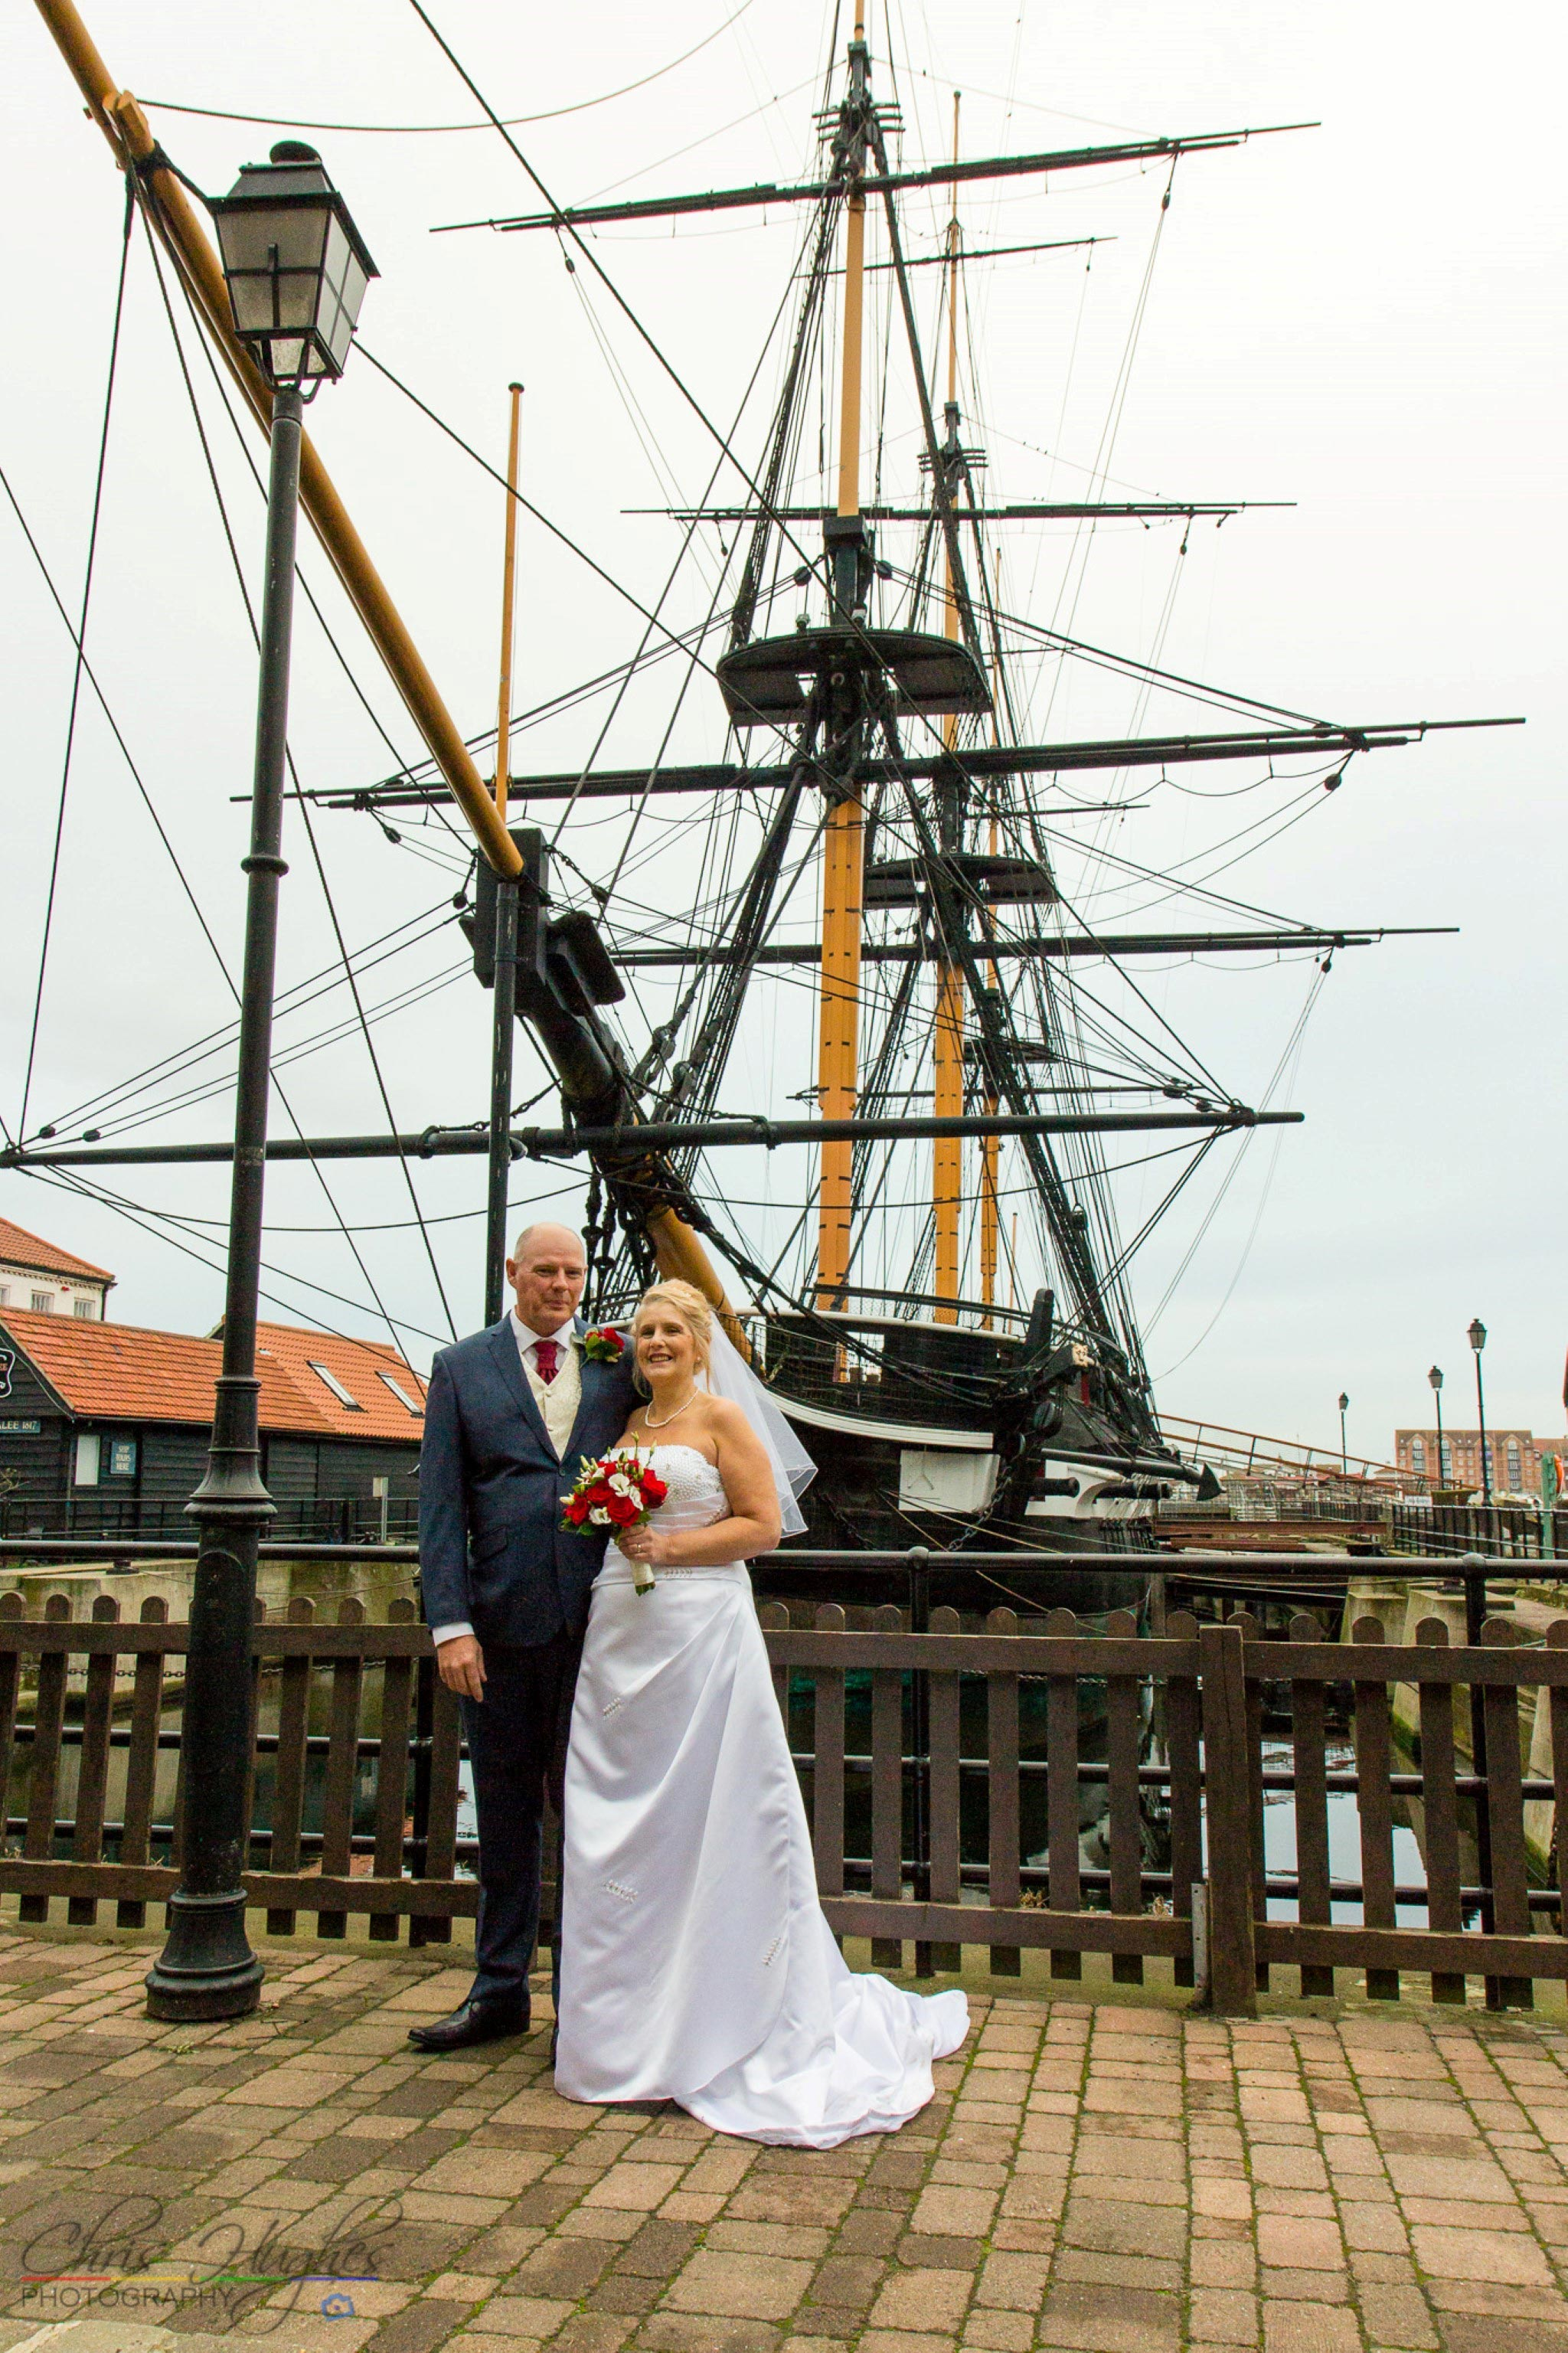 Bride & Groom, HMS Trincomalee, Hartlepool